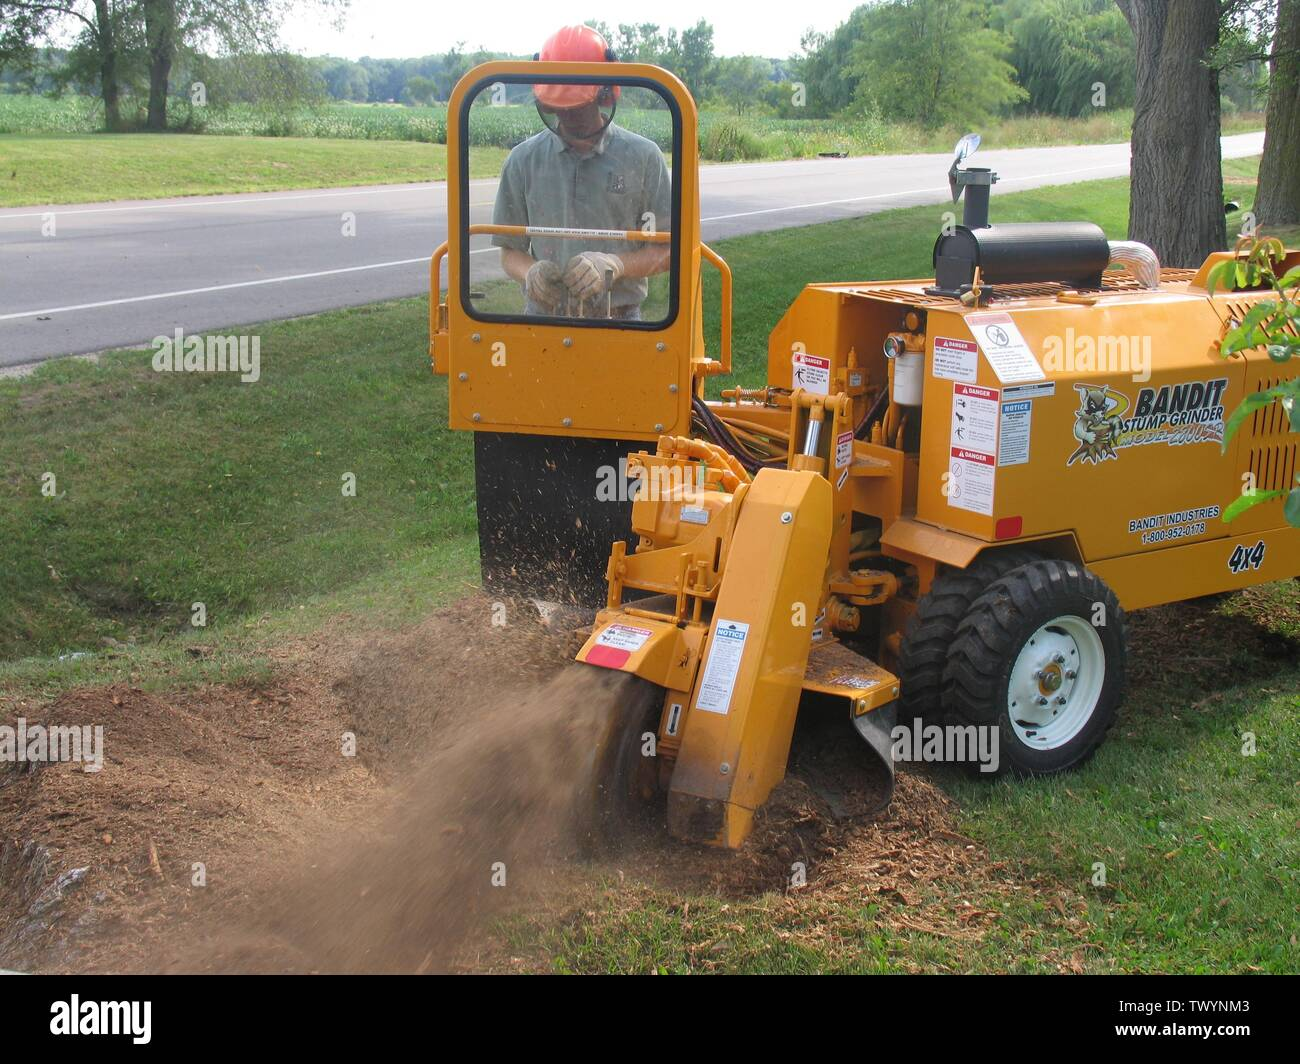 'English: Bandit Industries Model 2800SP, a 63 HP back yard stump grinder; before 11 December 2006 date QS:P,+2006-12-11T00:00:00Z/7,P1326,+2006-12-11T00:00:00Z/11; English: Transferred from en.wikipedia.org [1]: 2006-12-11 03:13 . . Reluskie . . 3,264×2,448 (1.1 MB); Reluskie; ' - Stock Image